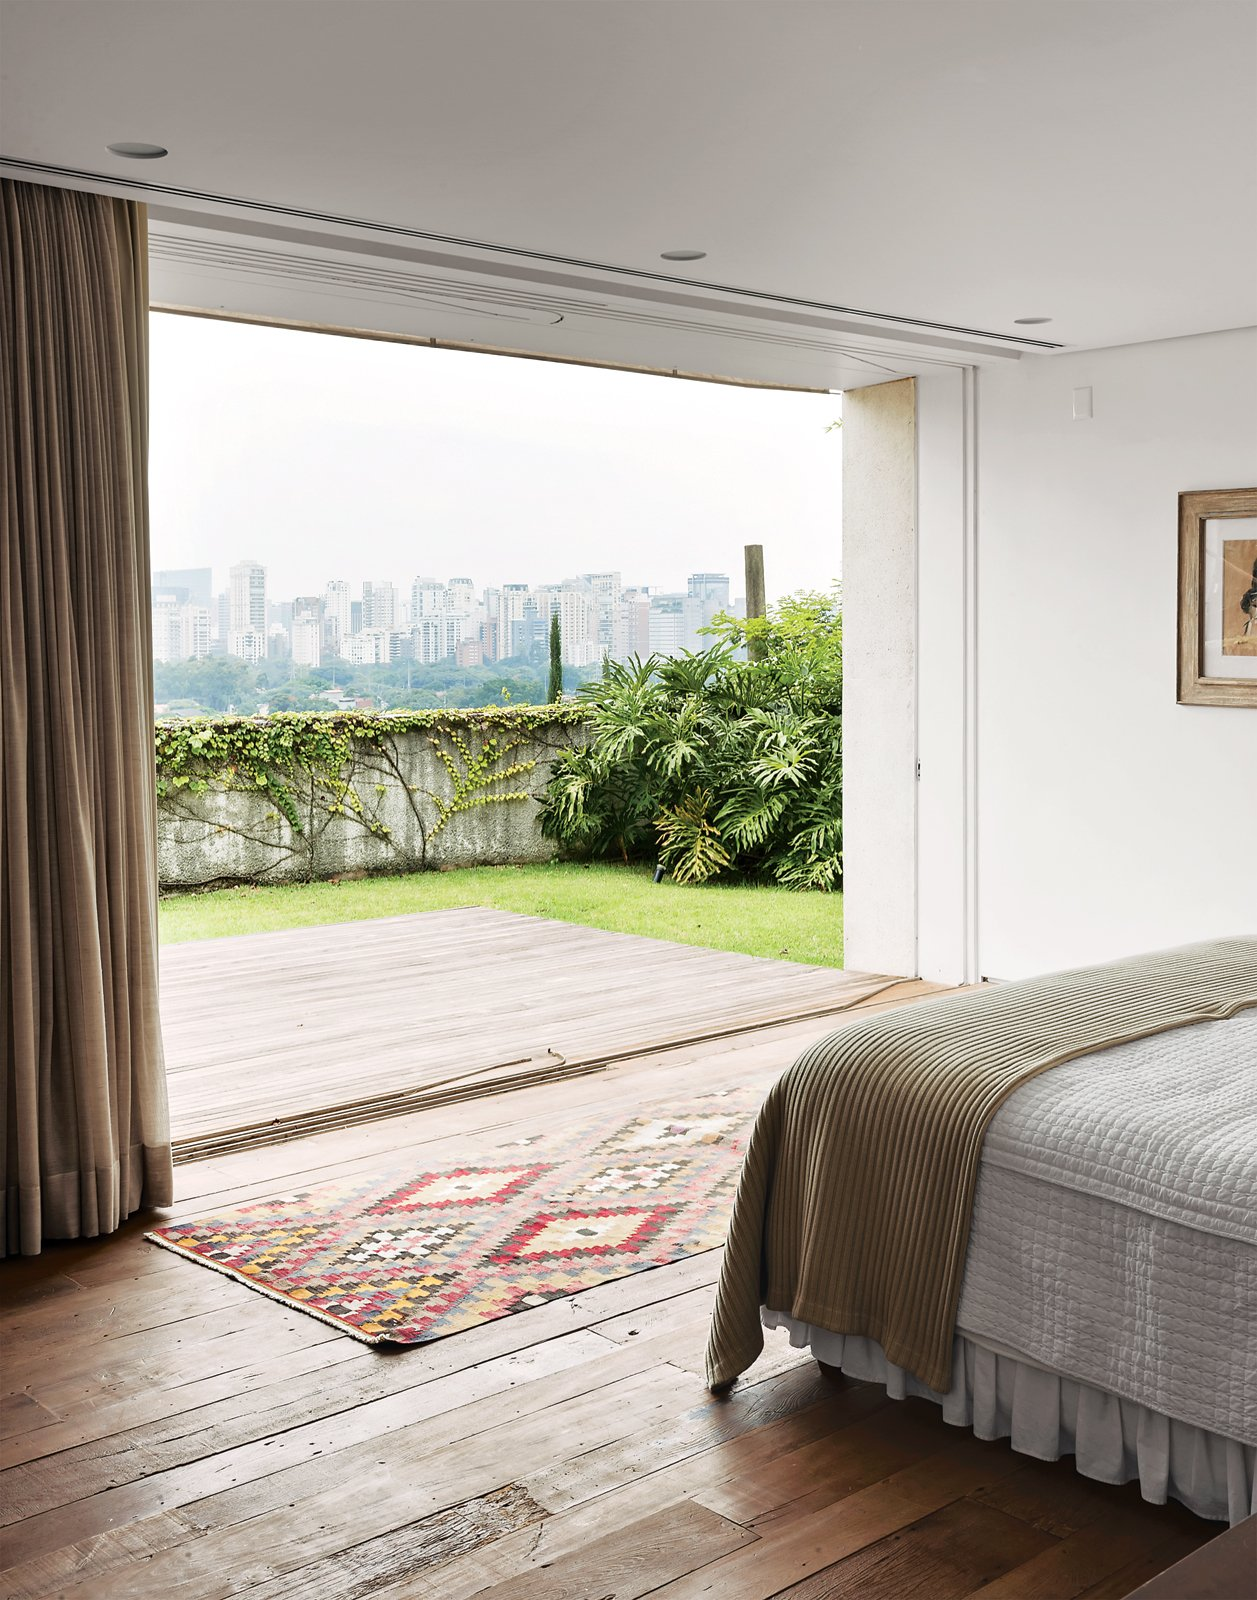 The master bedroom enjoys views of the city.